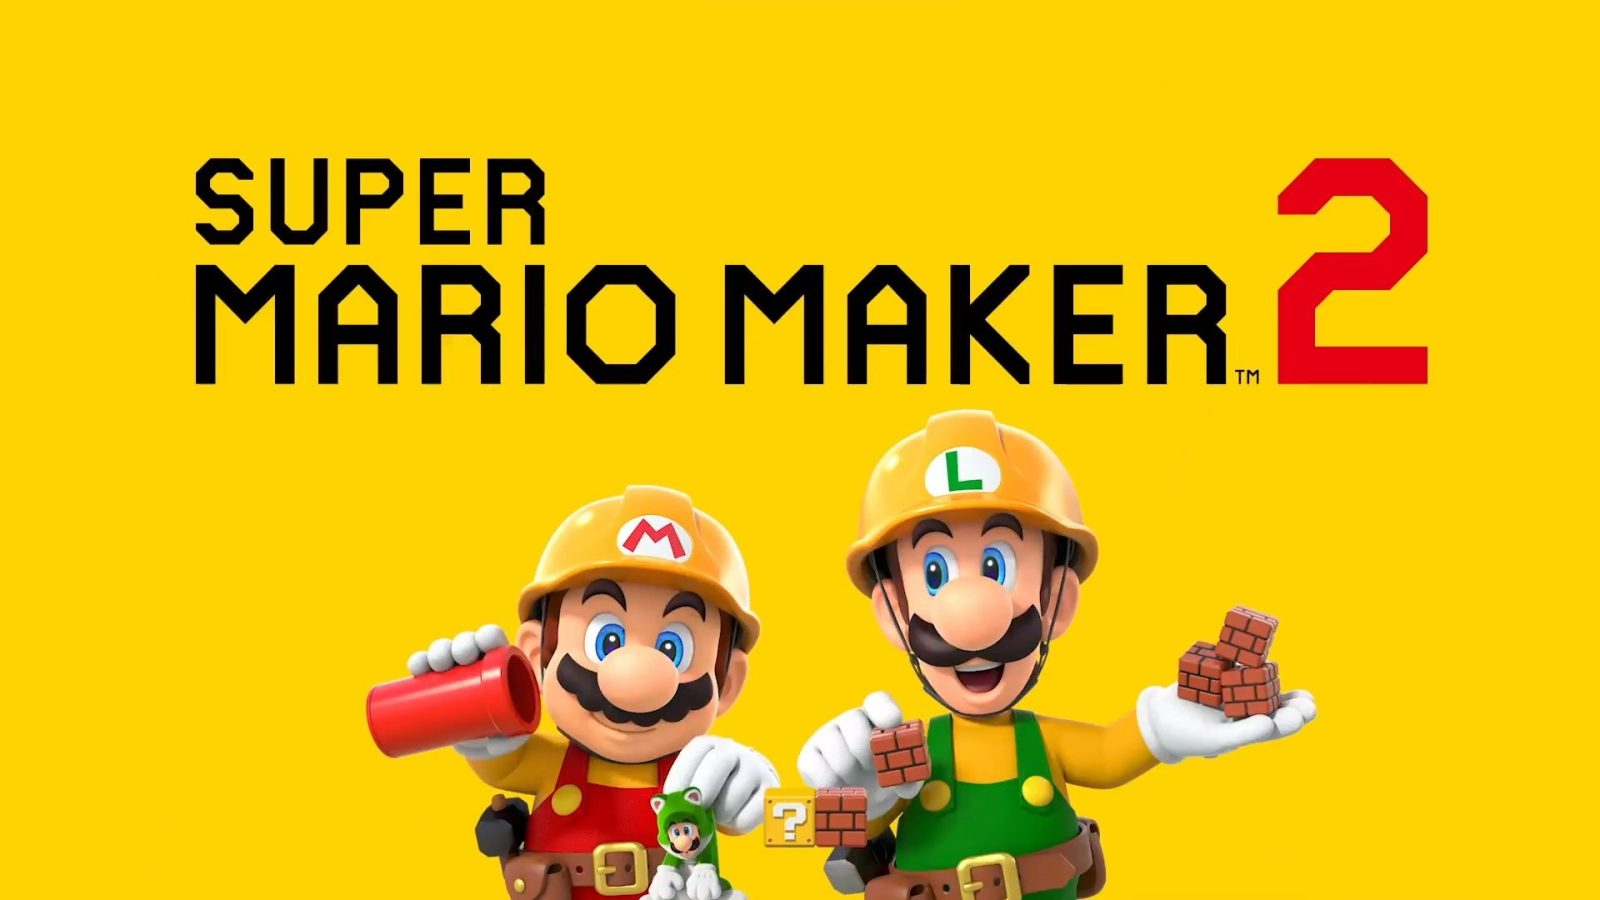 Nintendo Direct February 2019 includes Super Mario Maker 2 - 9to5Toys